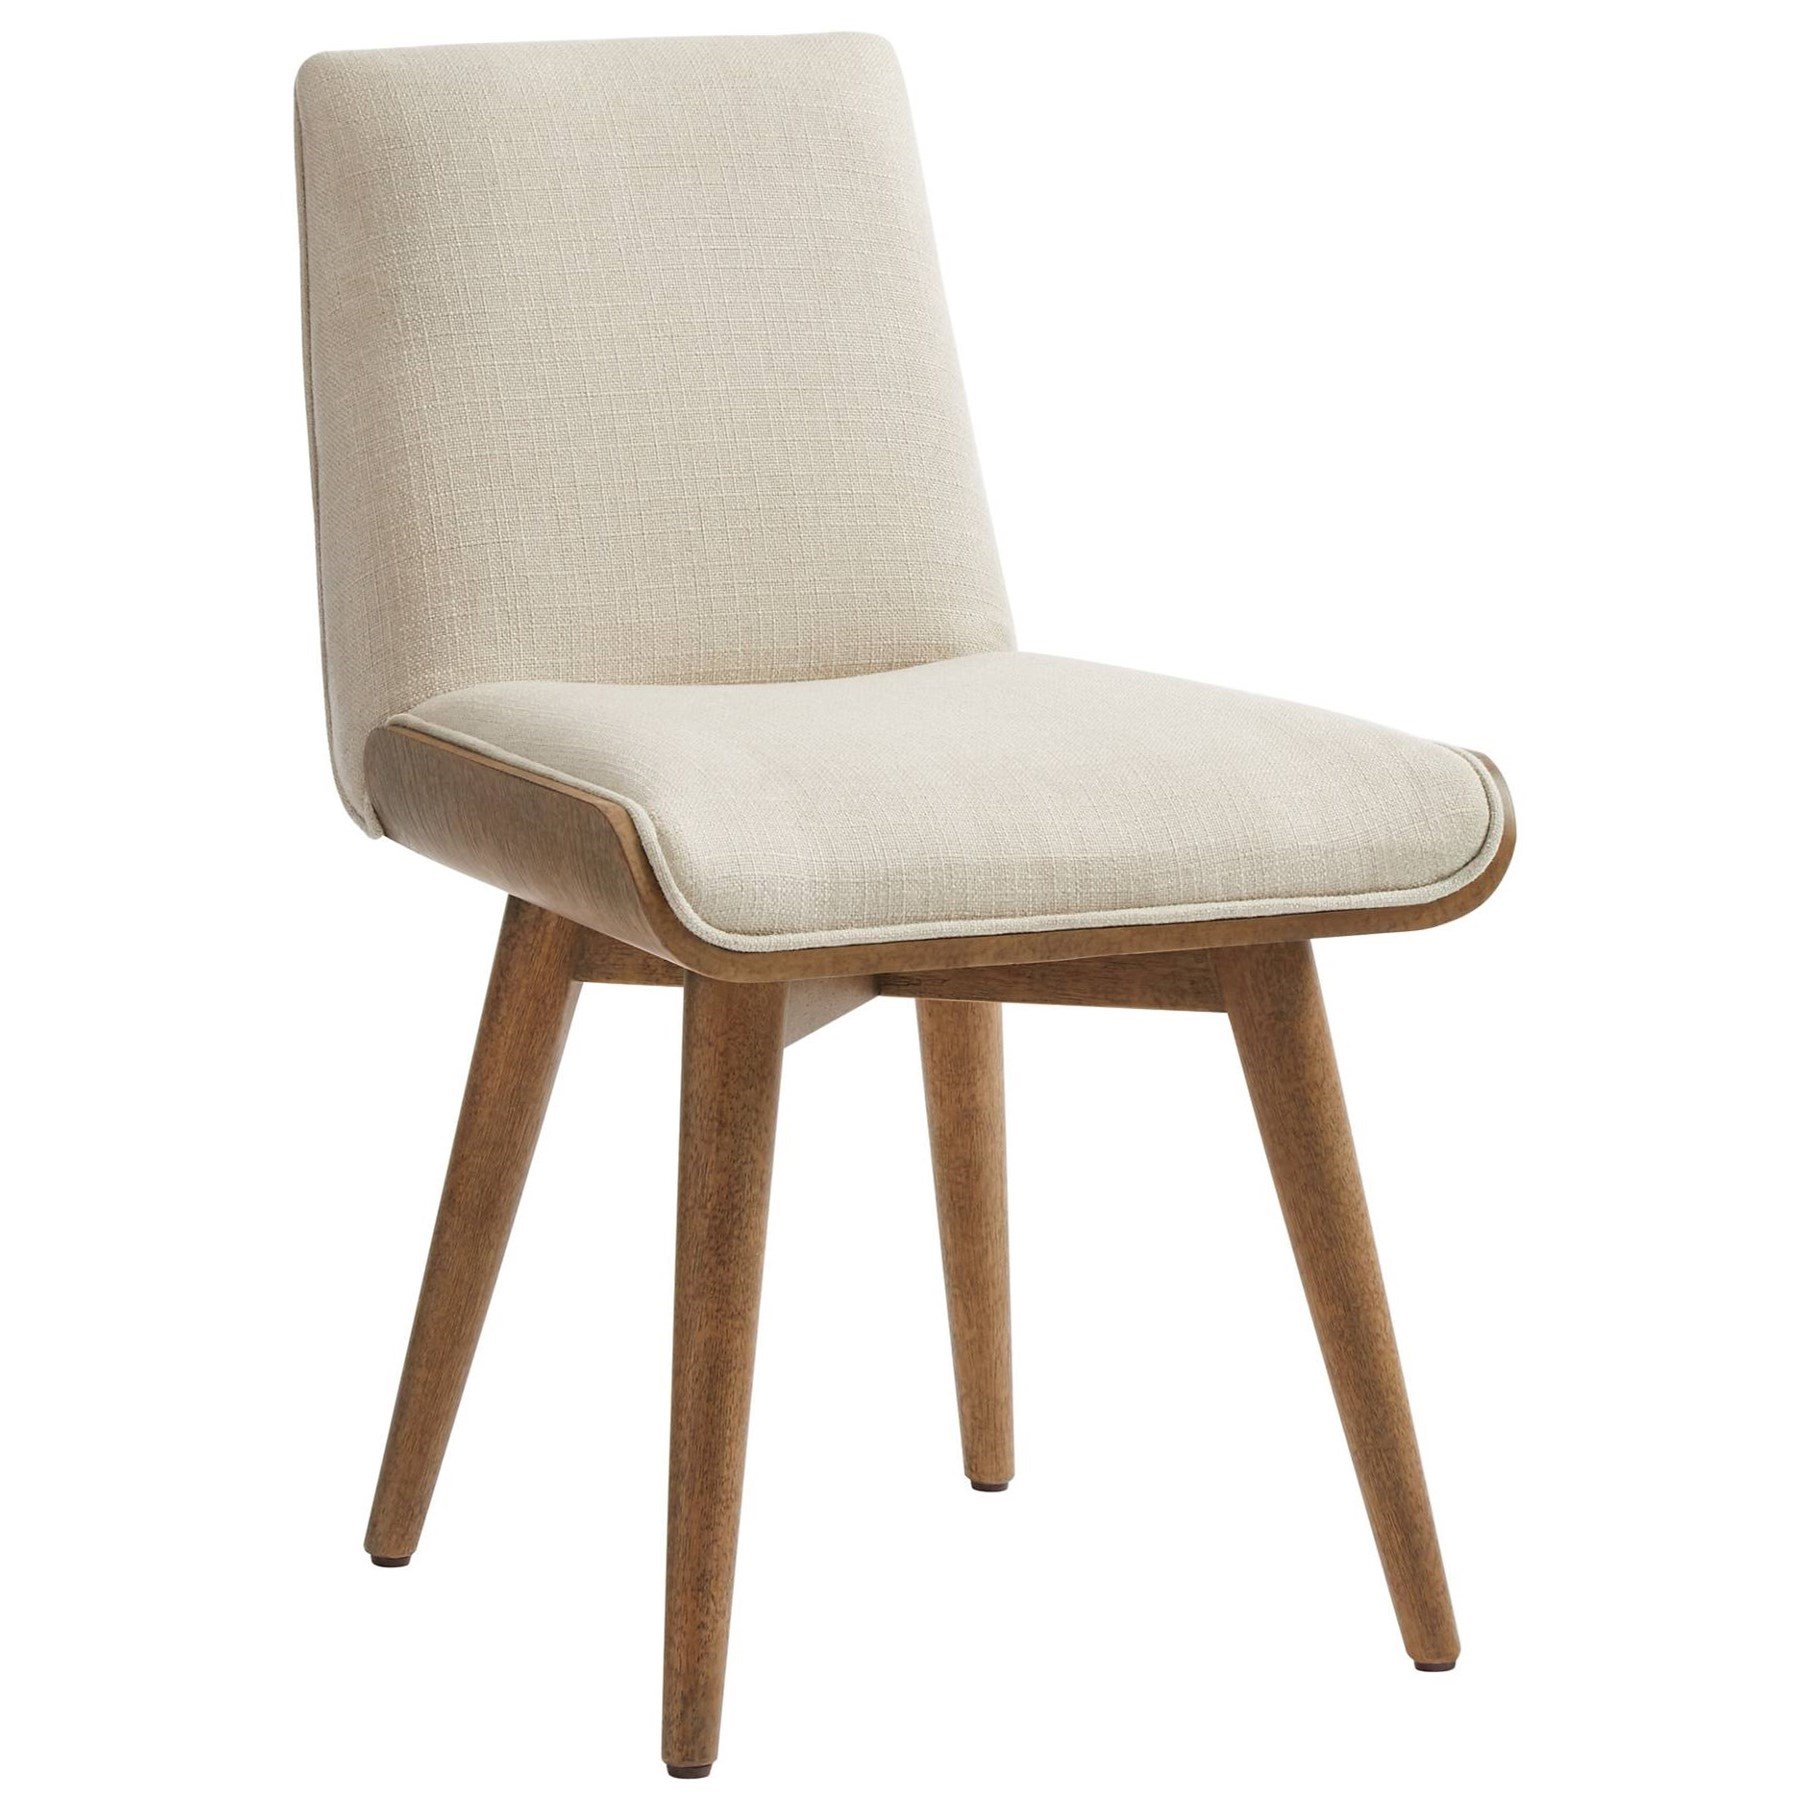 Driftwood Park Modern Desk Chair by Stone & Leigh Furniture at Alison Craig Home Furnishings